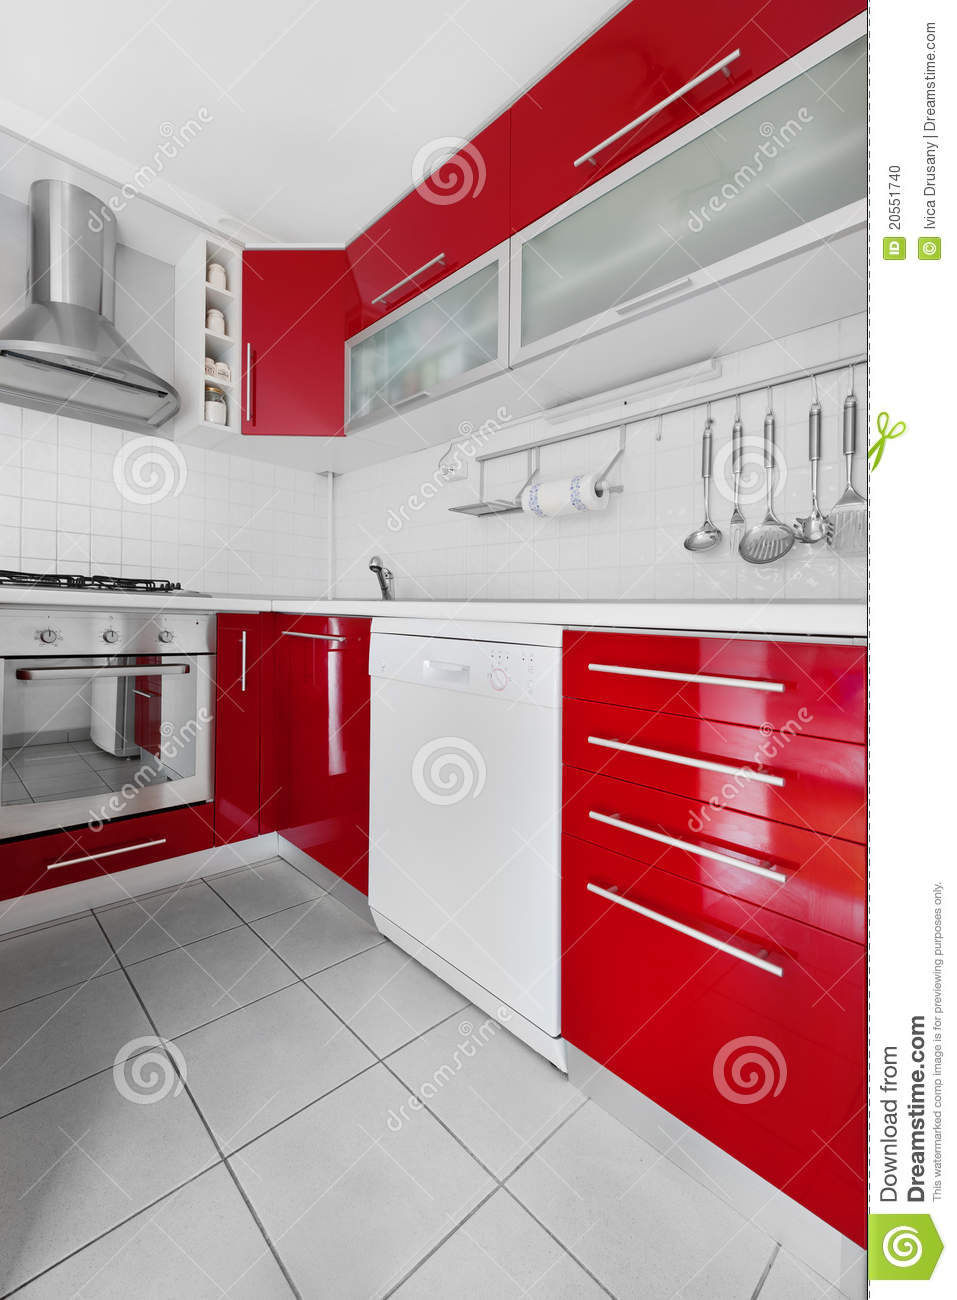 cuisine rouge et blanche moderne photo stock image 20551740. Black Bedroom Furniture Sets. Home Design Ideas